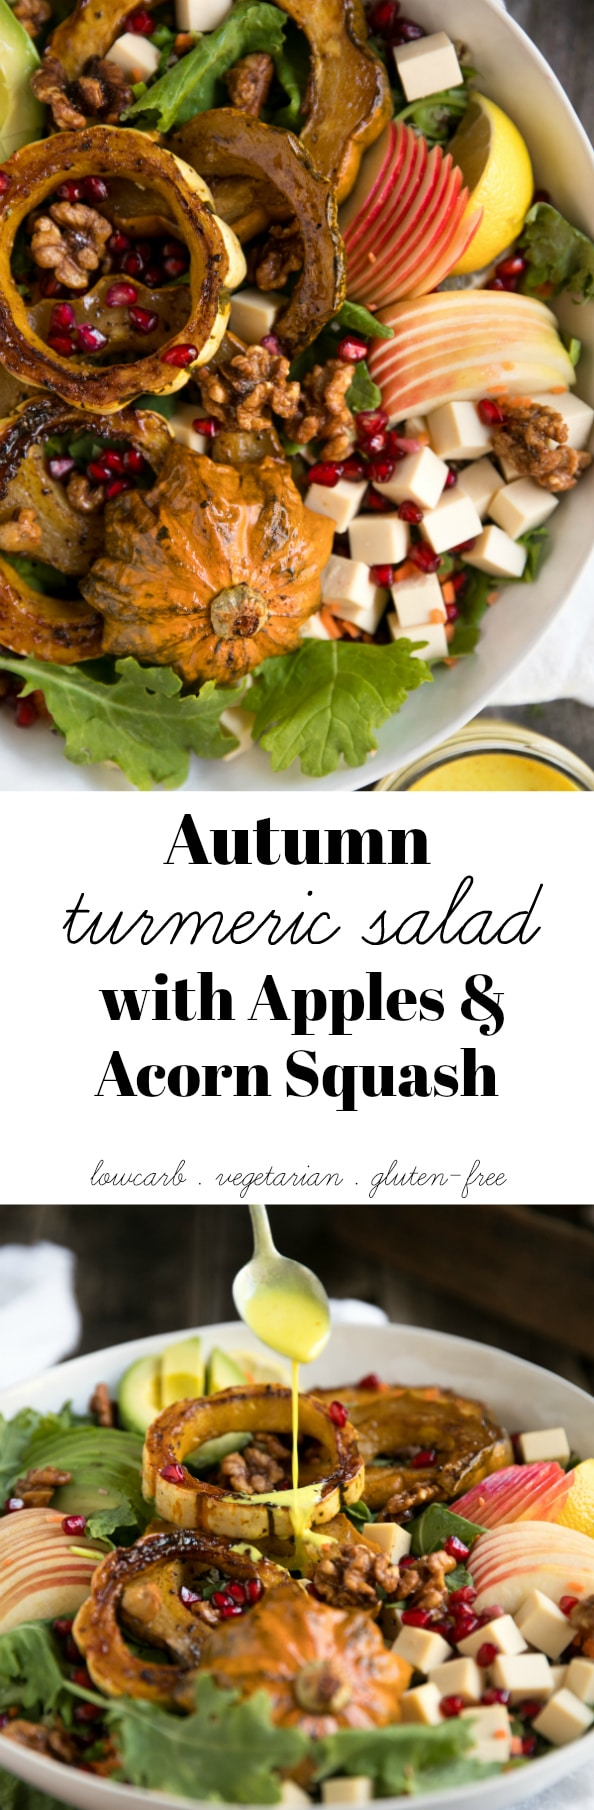 Autumn Turmeric Salad with Apples and Acorn Squash #salad #turmeric #squash #goudacheese #healthy #vegetarian #apples #dinner via @theforkedspoon